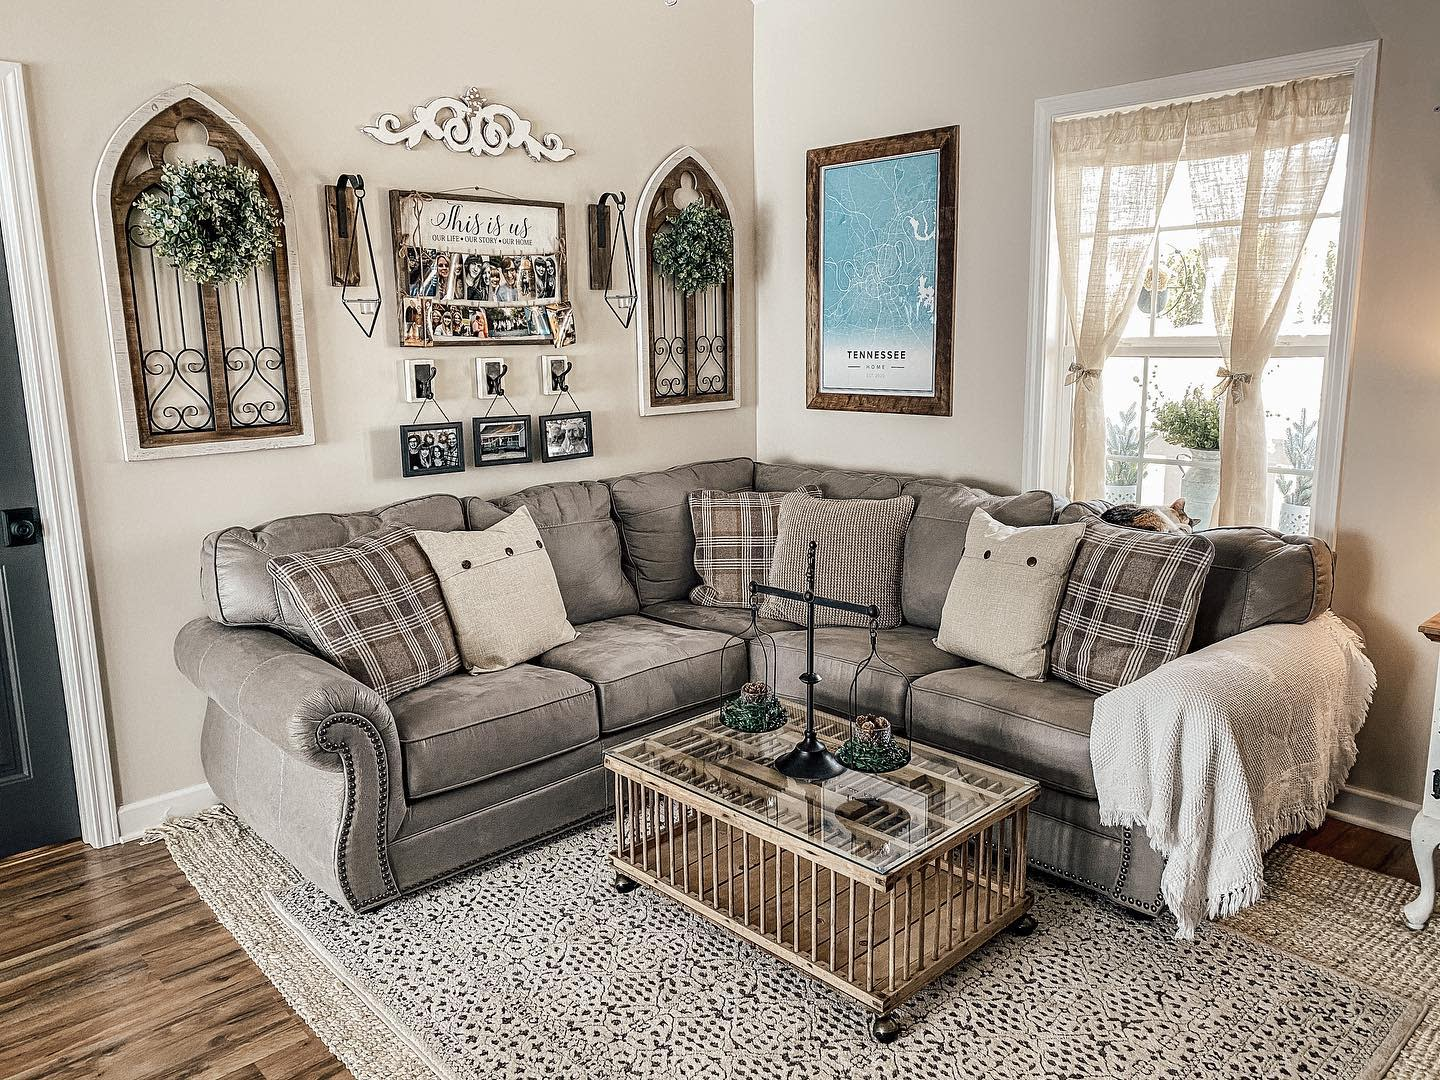 Farmhouse Industrial Living Room Ideas -harpethhomestyling